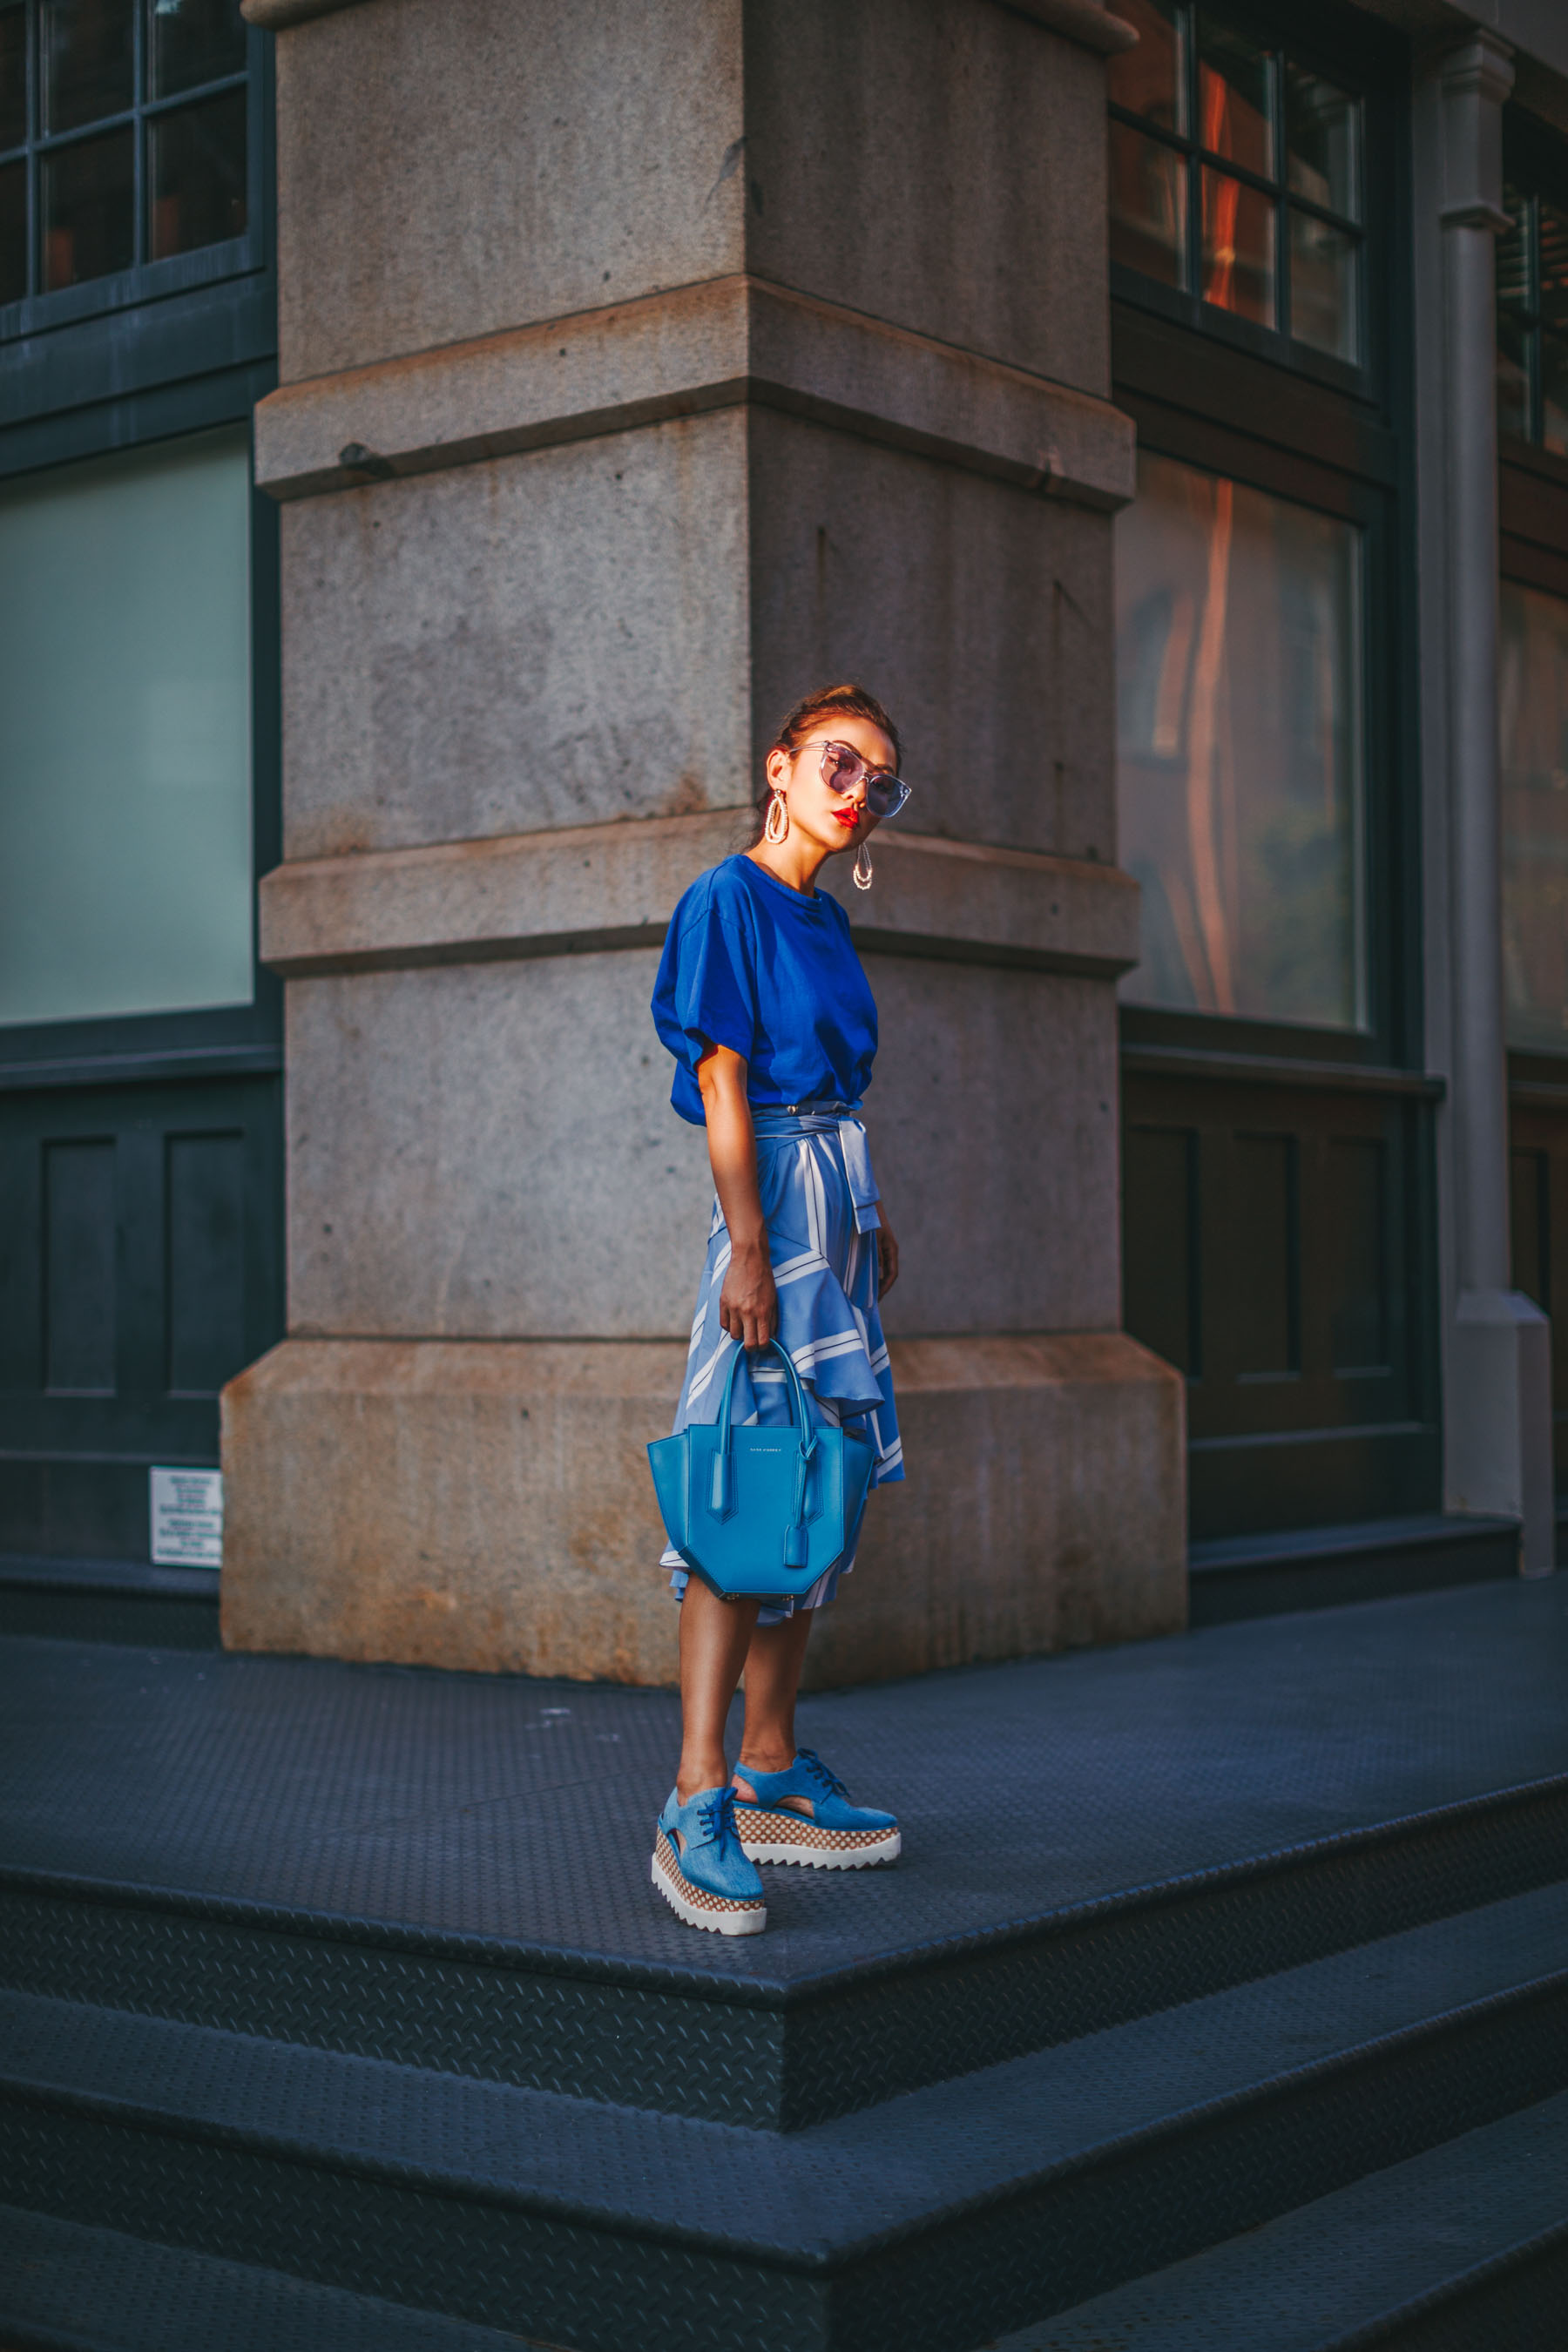 Elevate your everyday outfit with statement color mini bags - Blue Monochromatic Outfit, Edgy Style, Blue Statement Bag // NotJessFashion.com